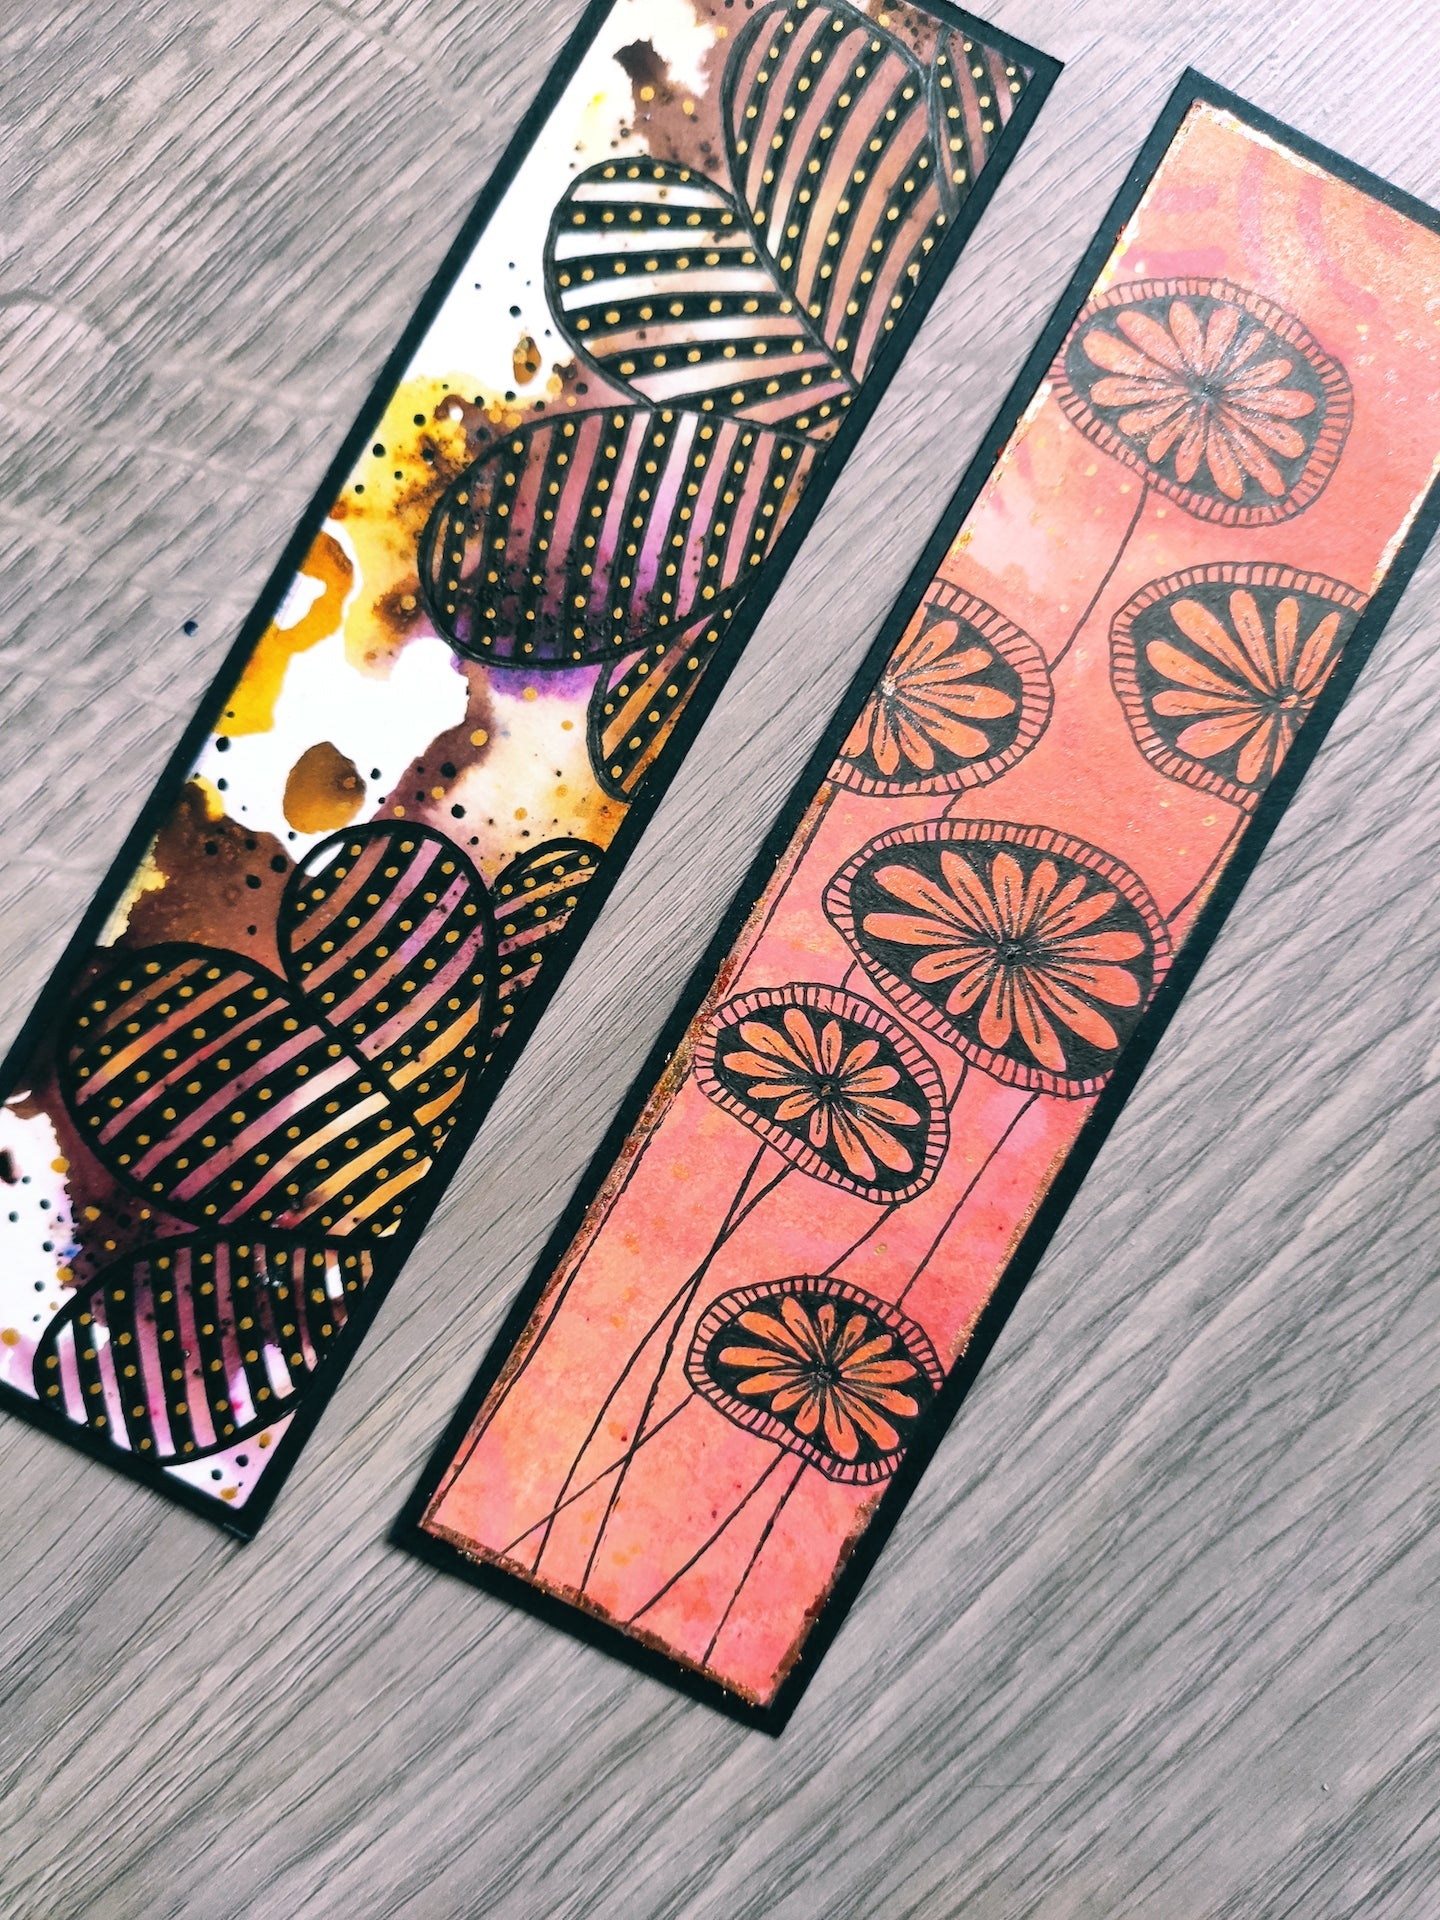 Handmade bookmarks with doodles, set 13